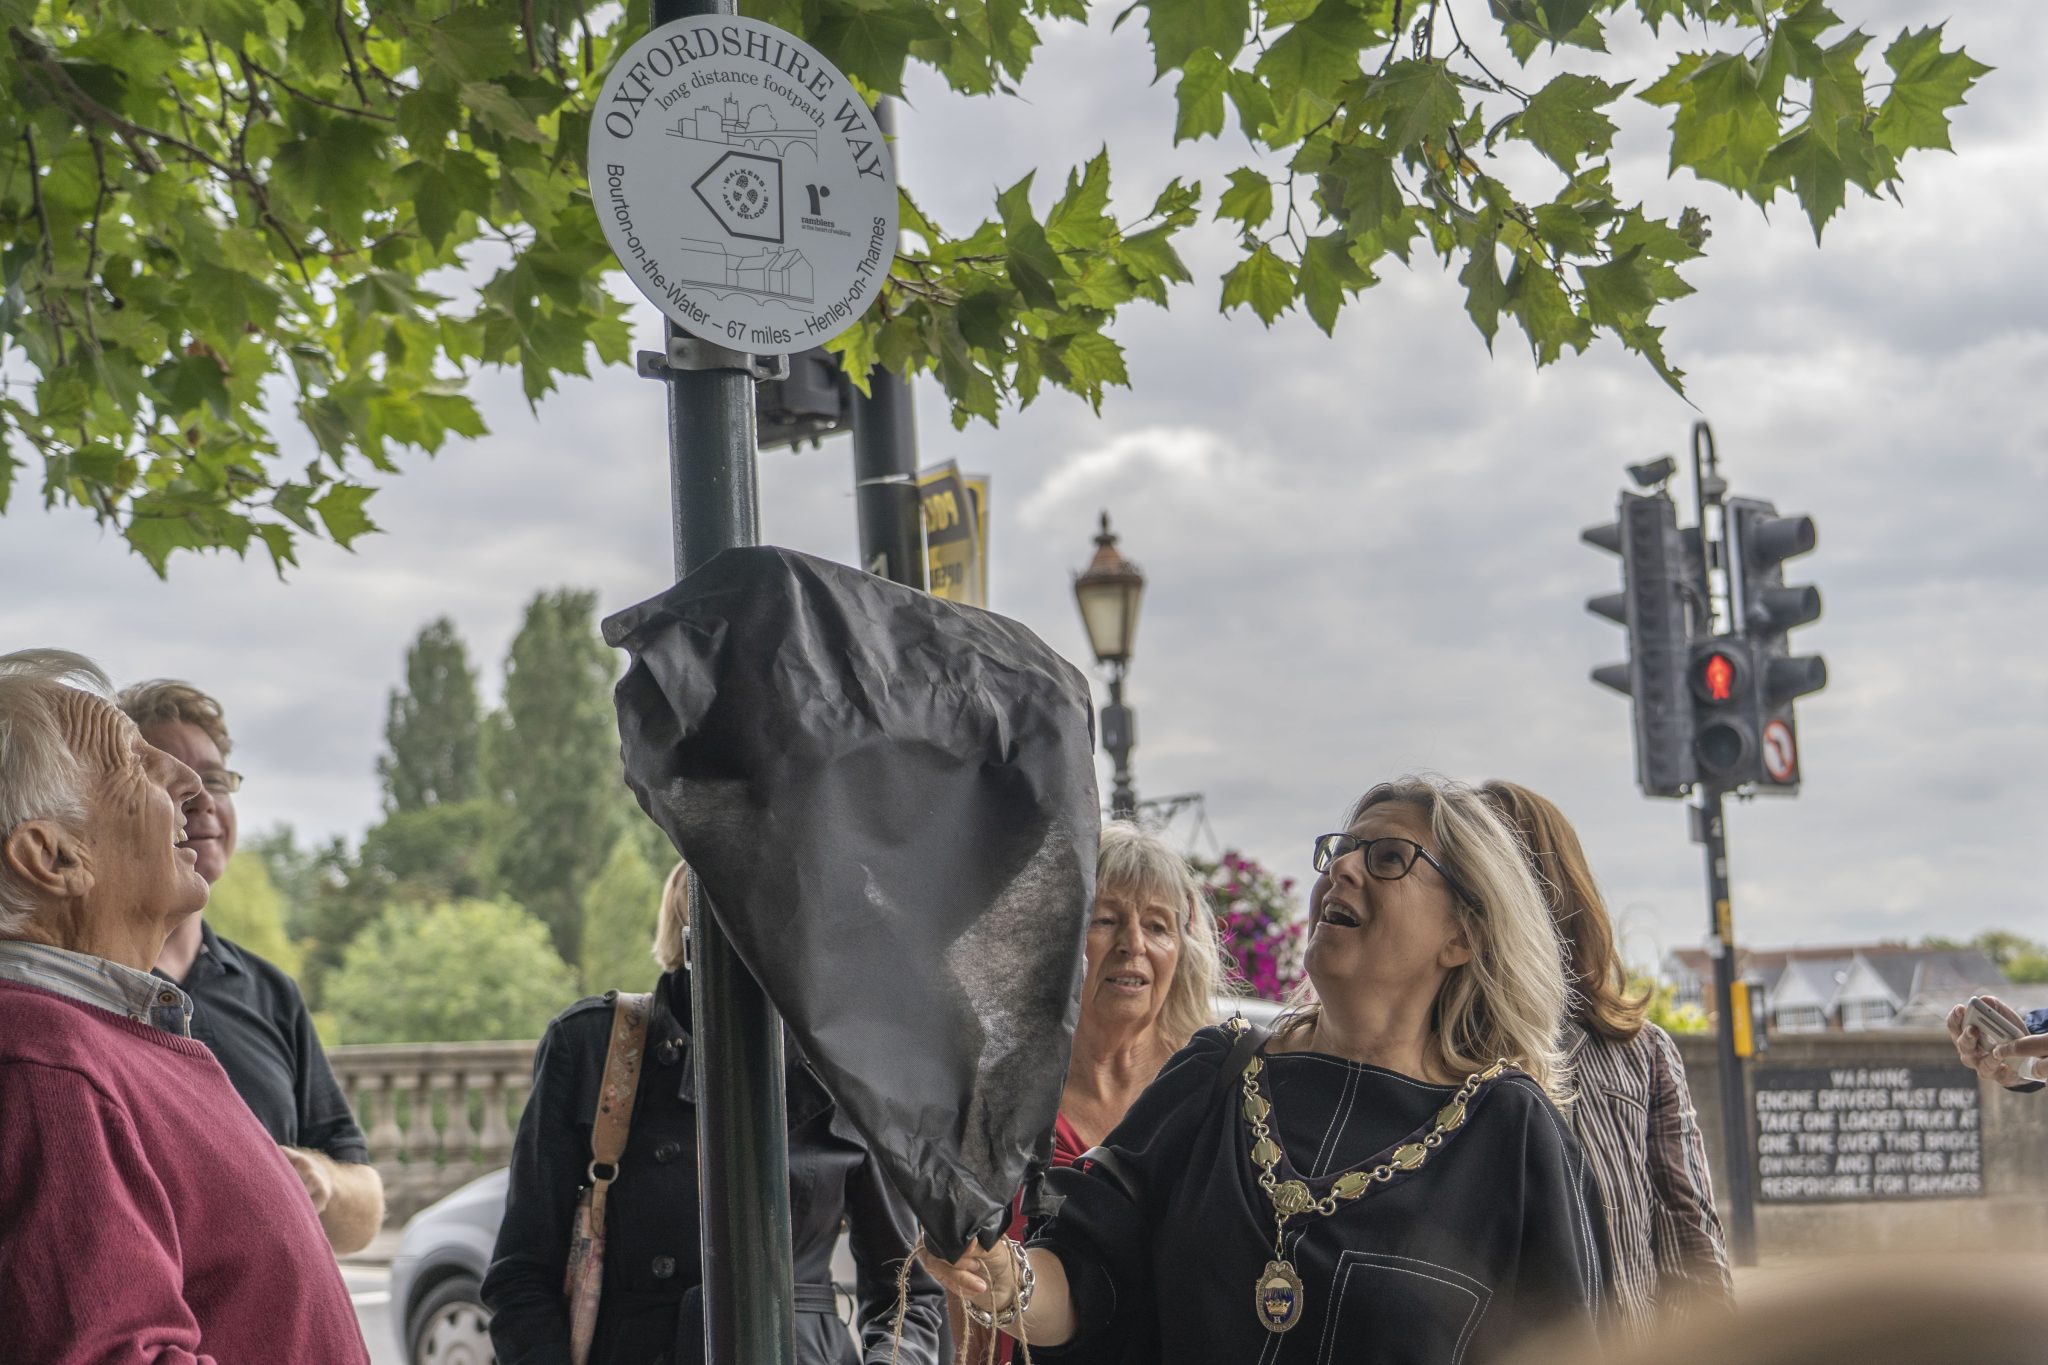 The Mayor Unveils the Oxfordshire Way Marker